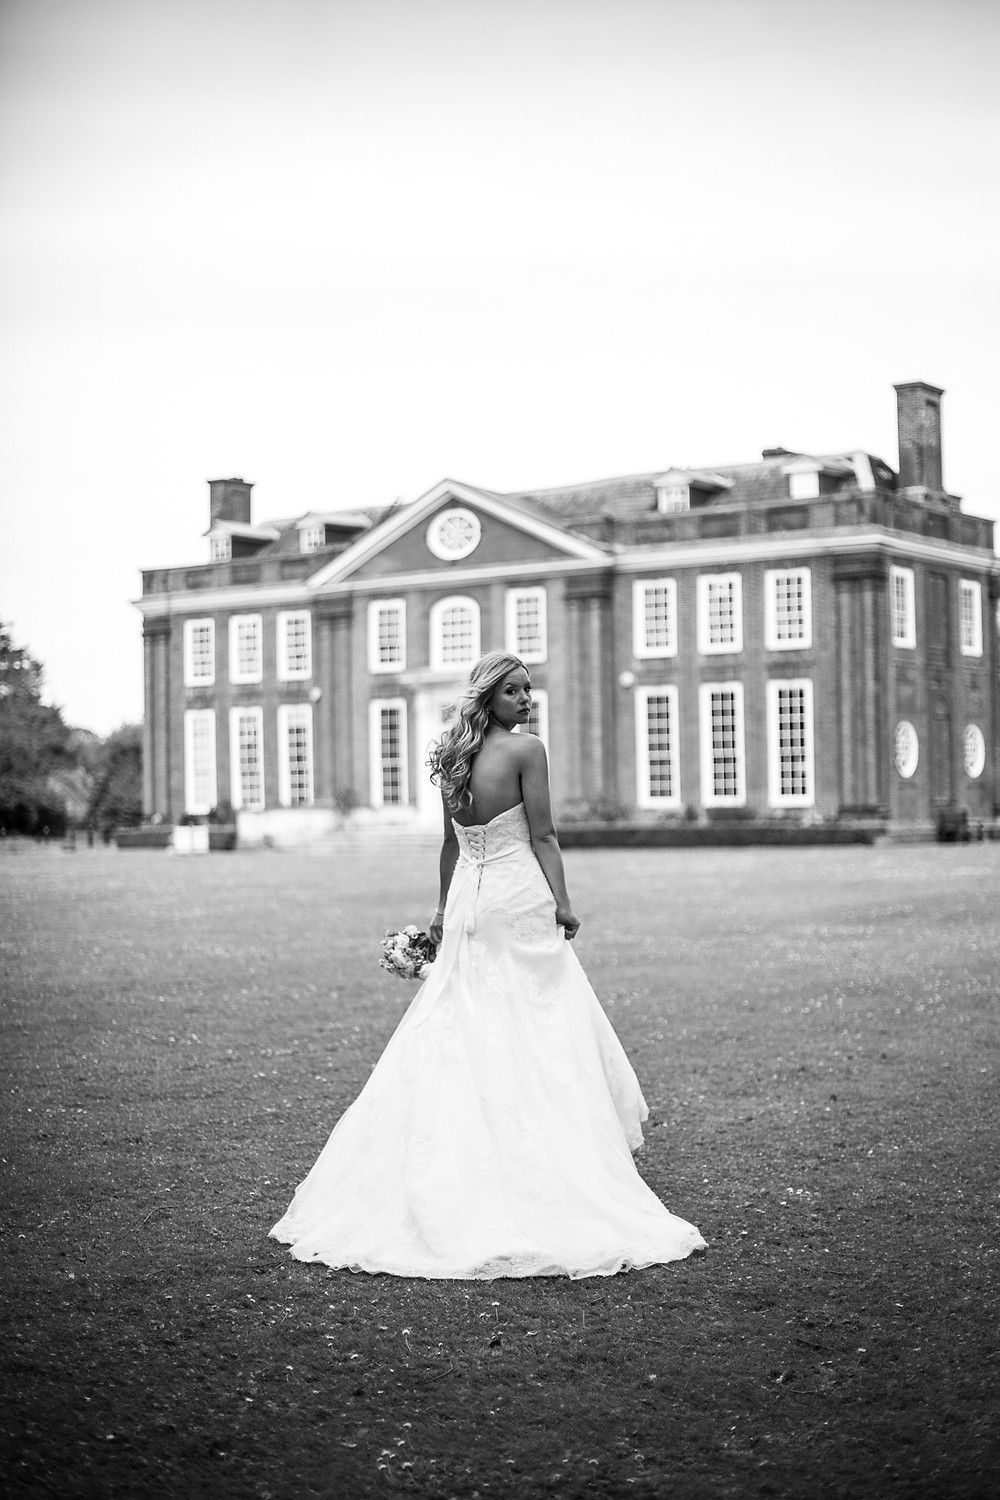 Photographed by John Knight | Black and white image of bride walking towards Bradbourne House, looking over her shoulder at the camera